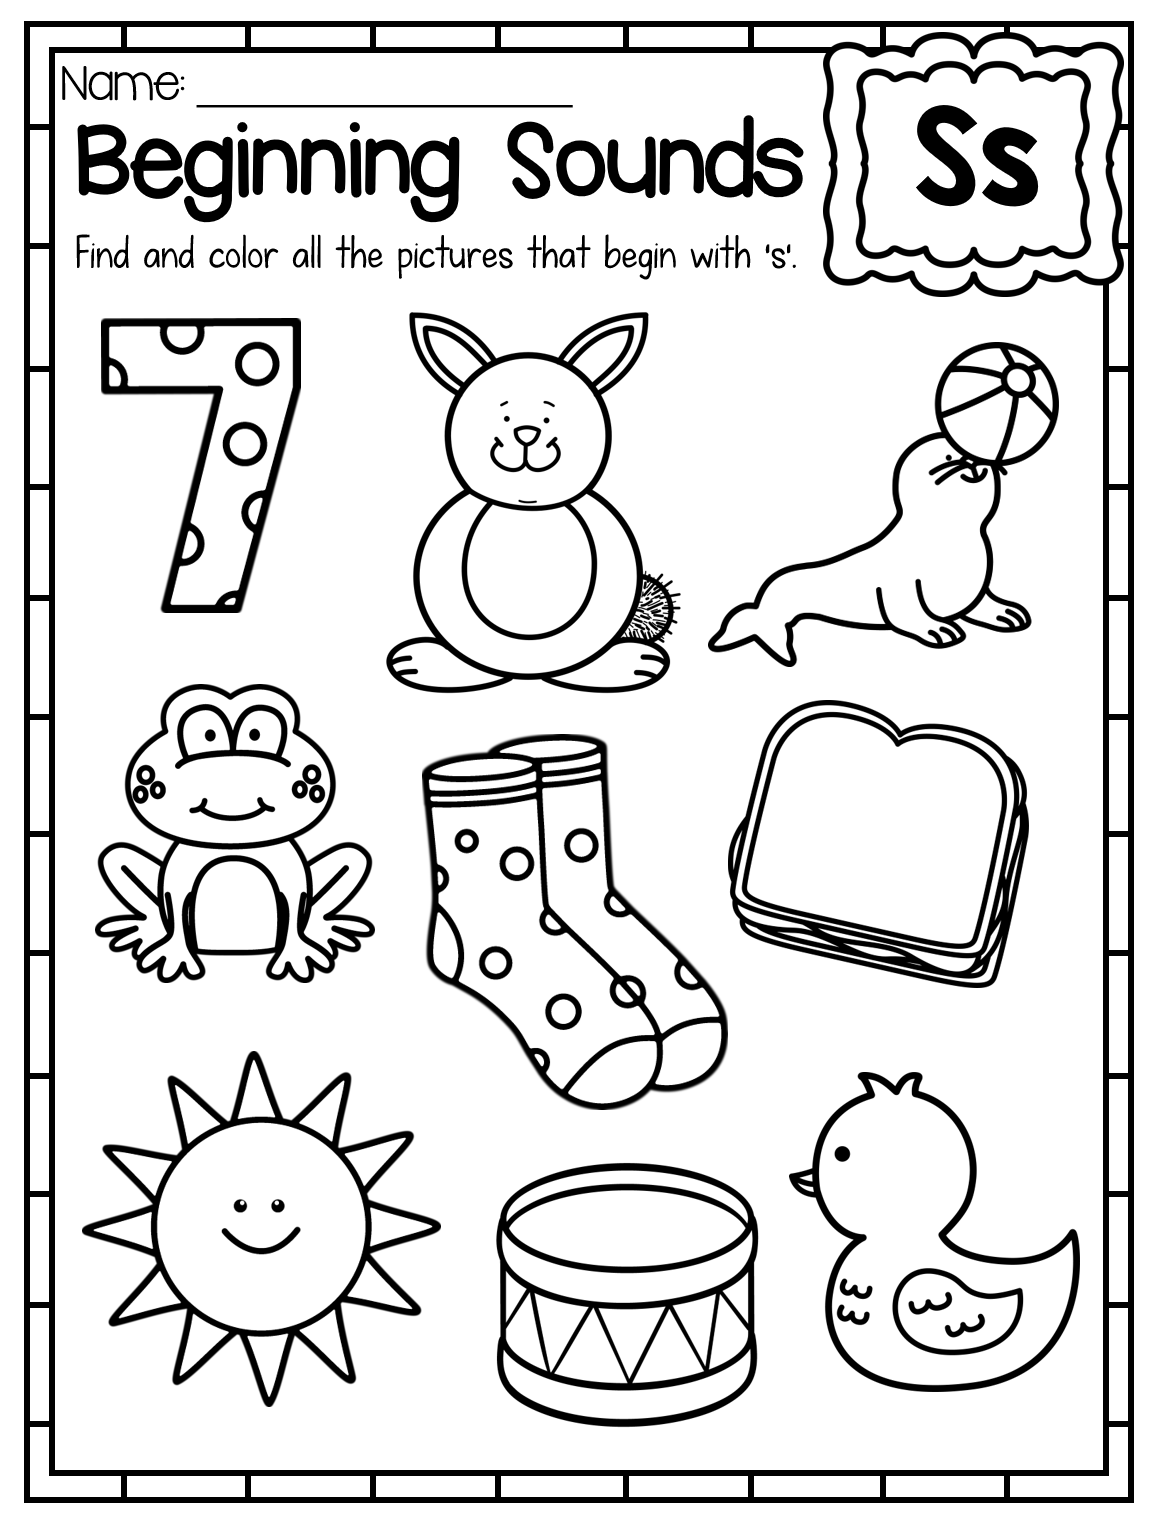 Worksheet Beginning Letter Sound